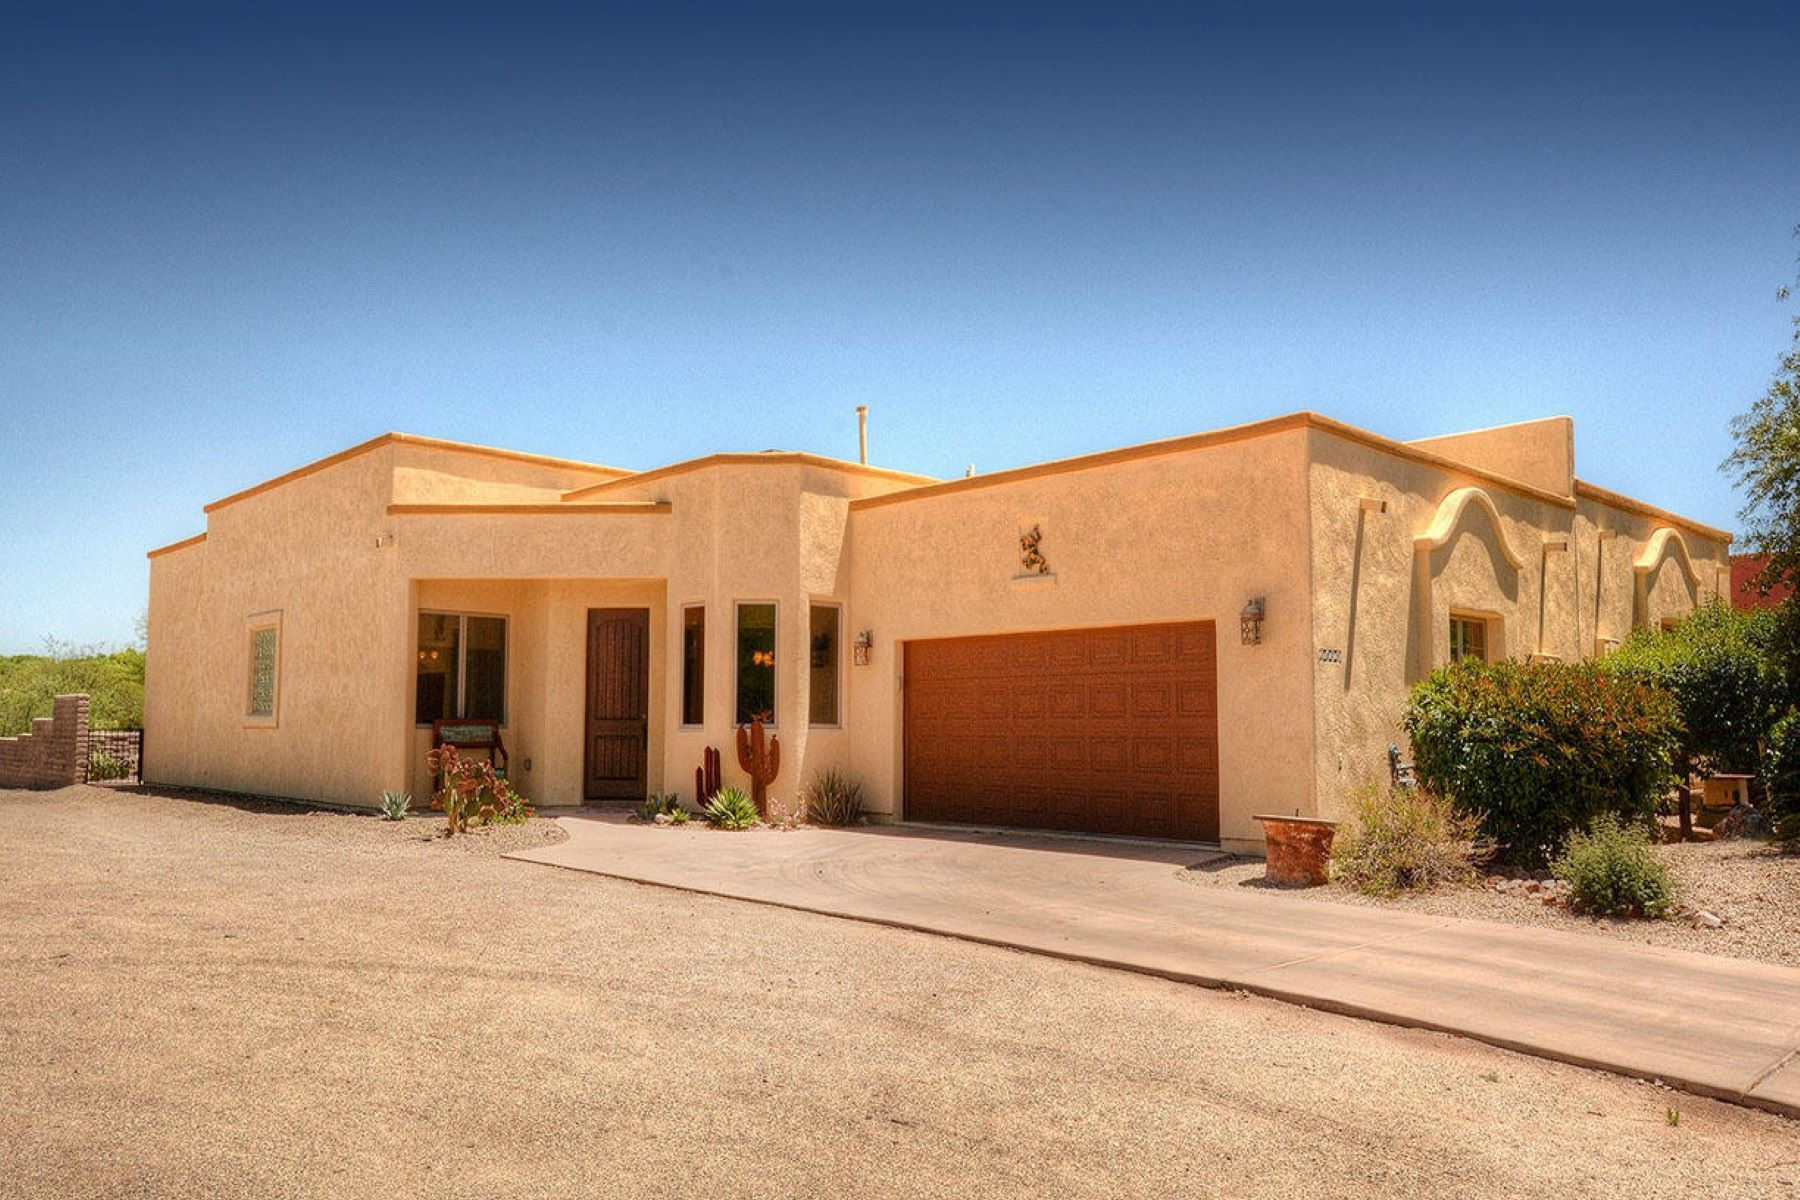 Townhouse for Sale at Lovely home with fabulous views 2175 Embarcadero Way Tubac, Arizona, 85646 United States